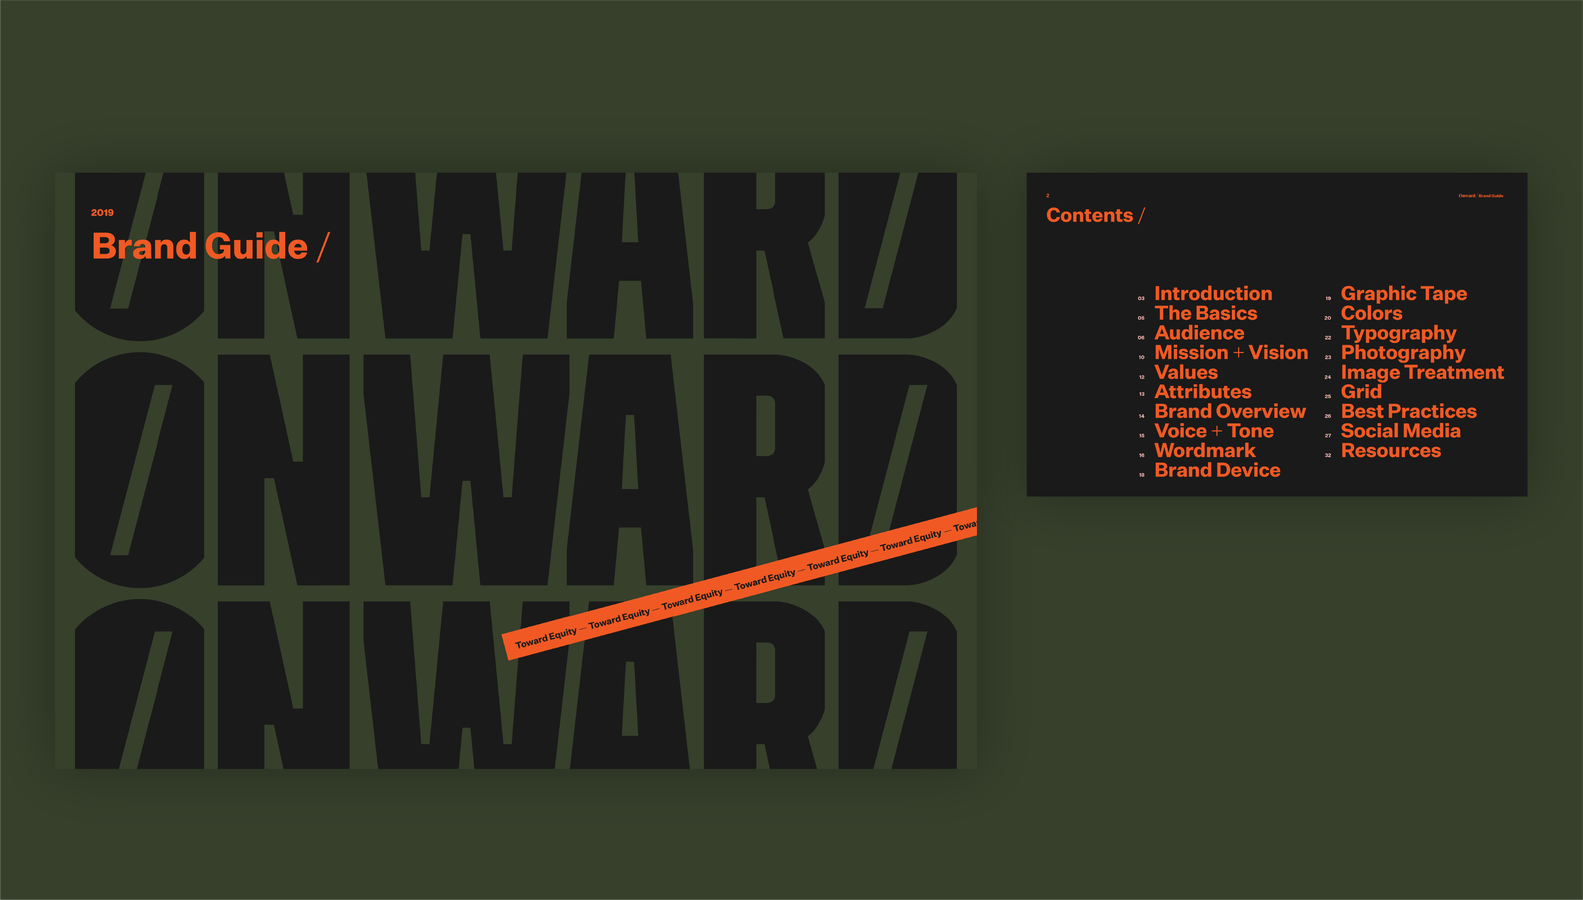 Onward brand guide table of contents